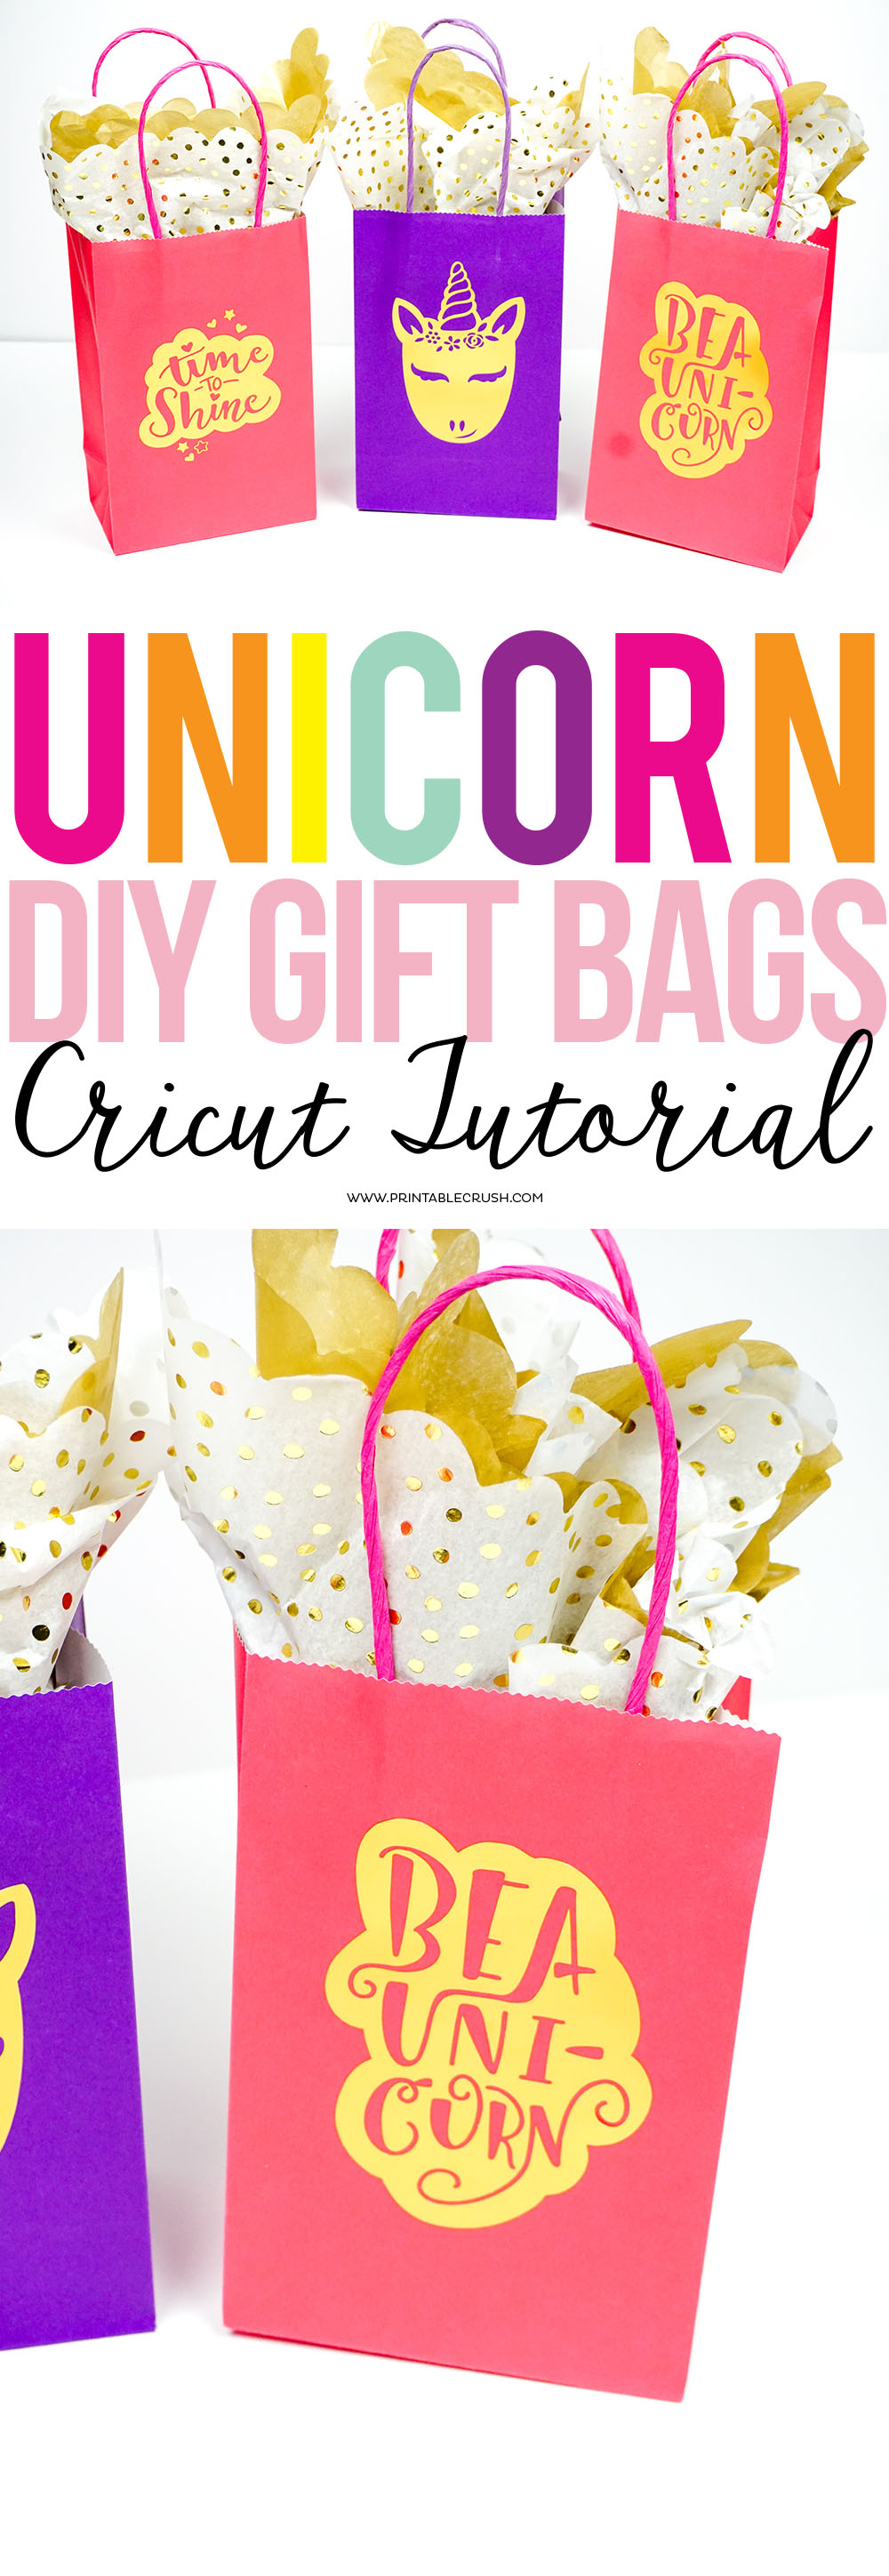 I love these adorable DIY Gift Bags with Unicorn Graphics. They're the easiest way to customize a birthday party favor bag!#unicorncraft #unicorn #unicornsvgfile #unicornparty #partyideas #partyfavors #unicornpartyfavors #cricutcraft #cricutideas #cricutpartyfavors